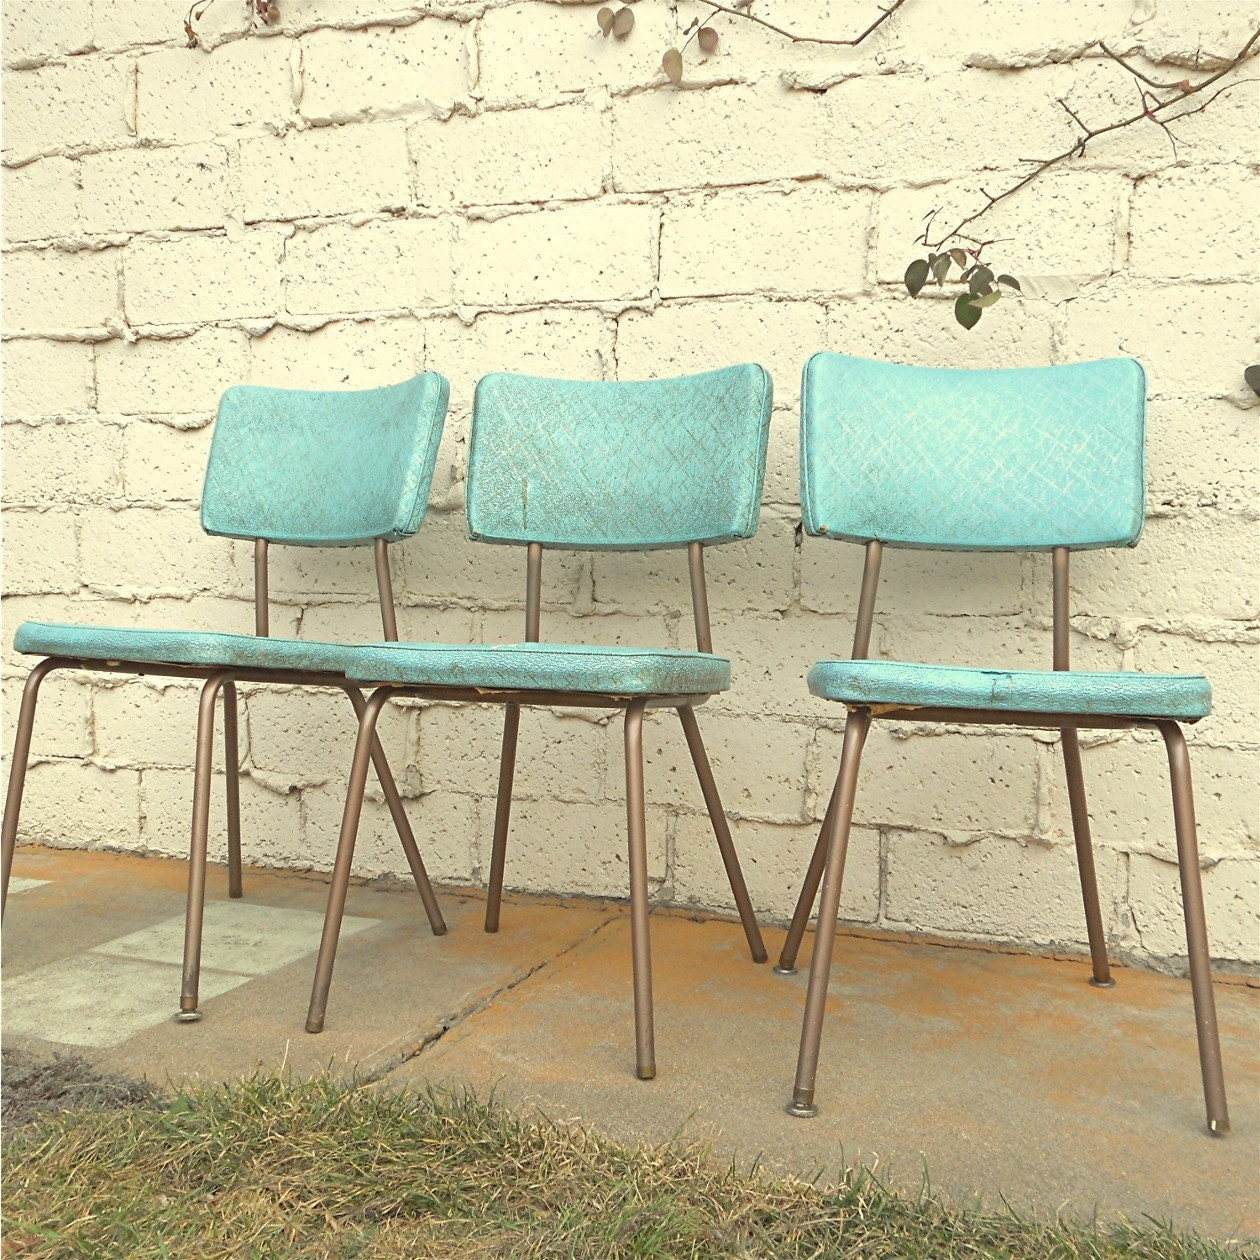 Vintage kitchen chairs three vinyl turquoise chairs local for Kitchen chairs